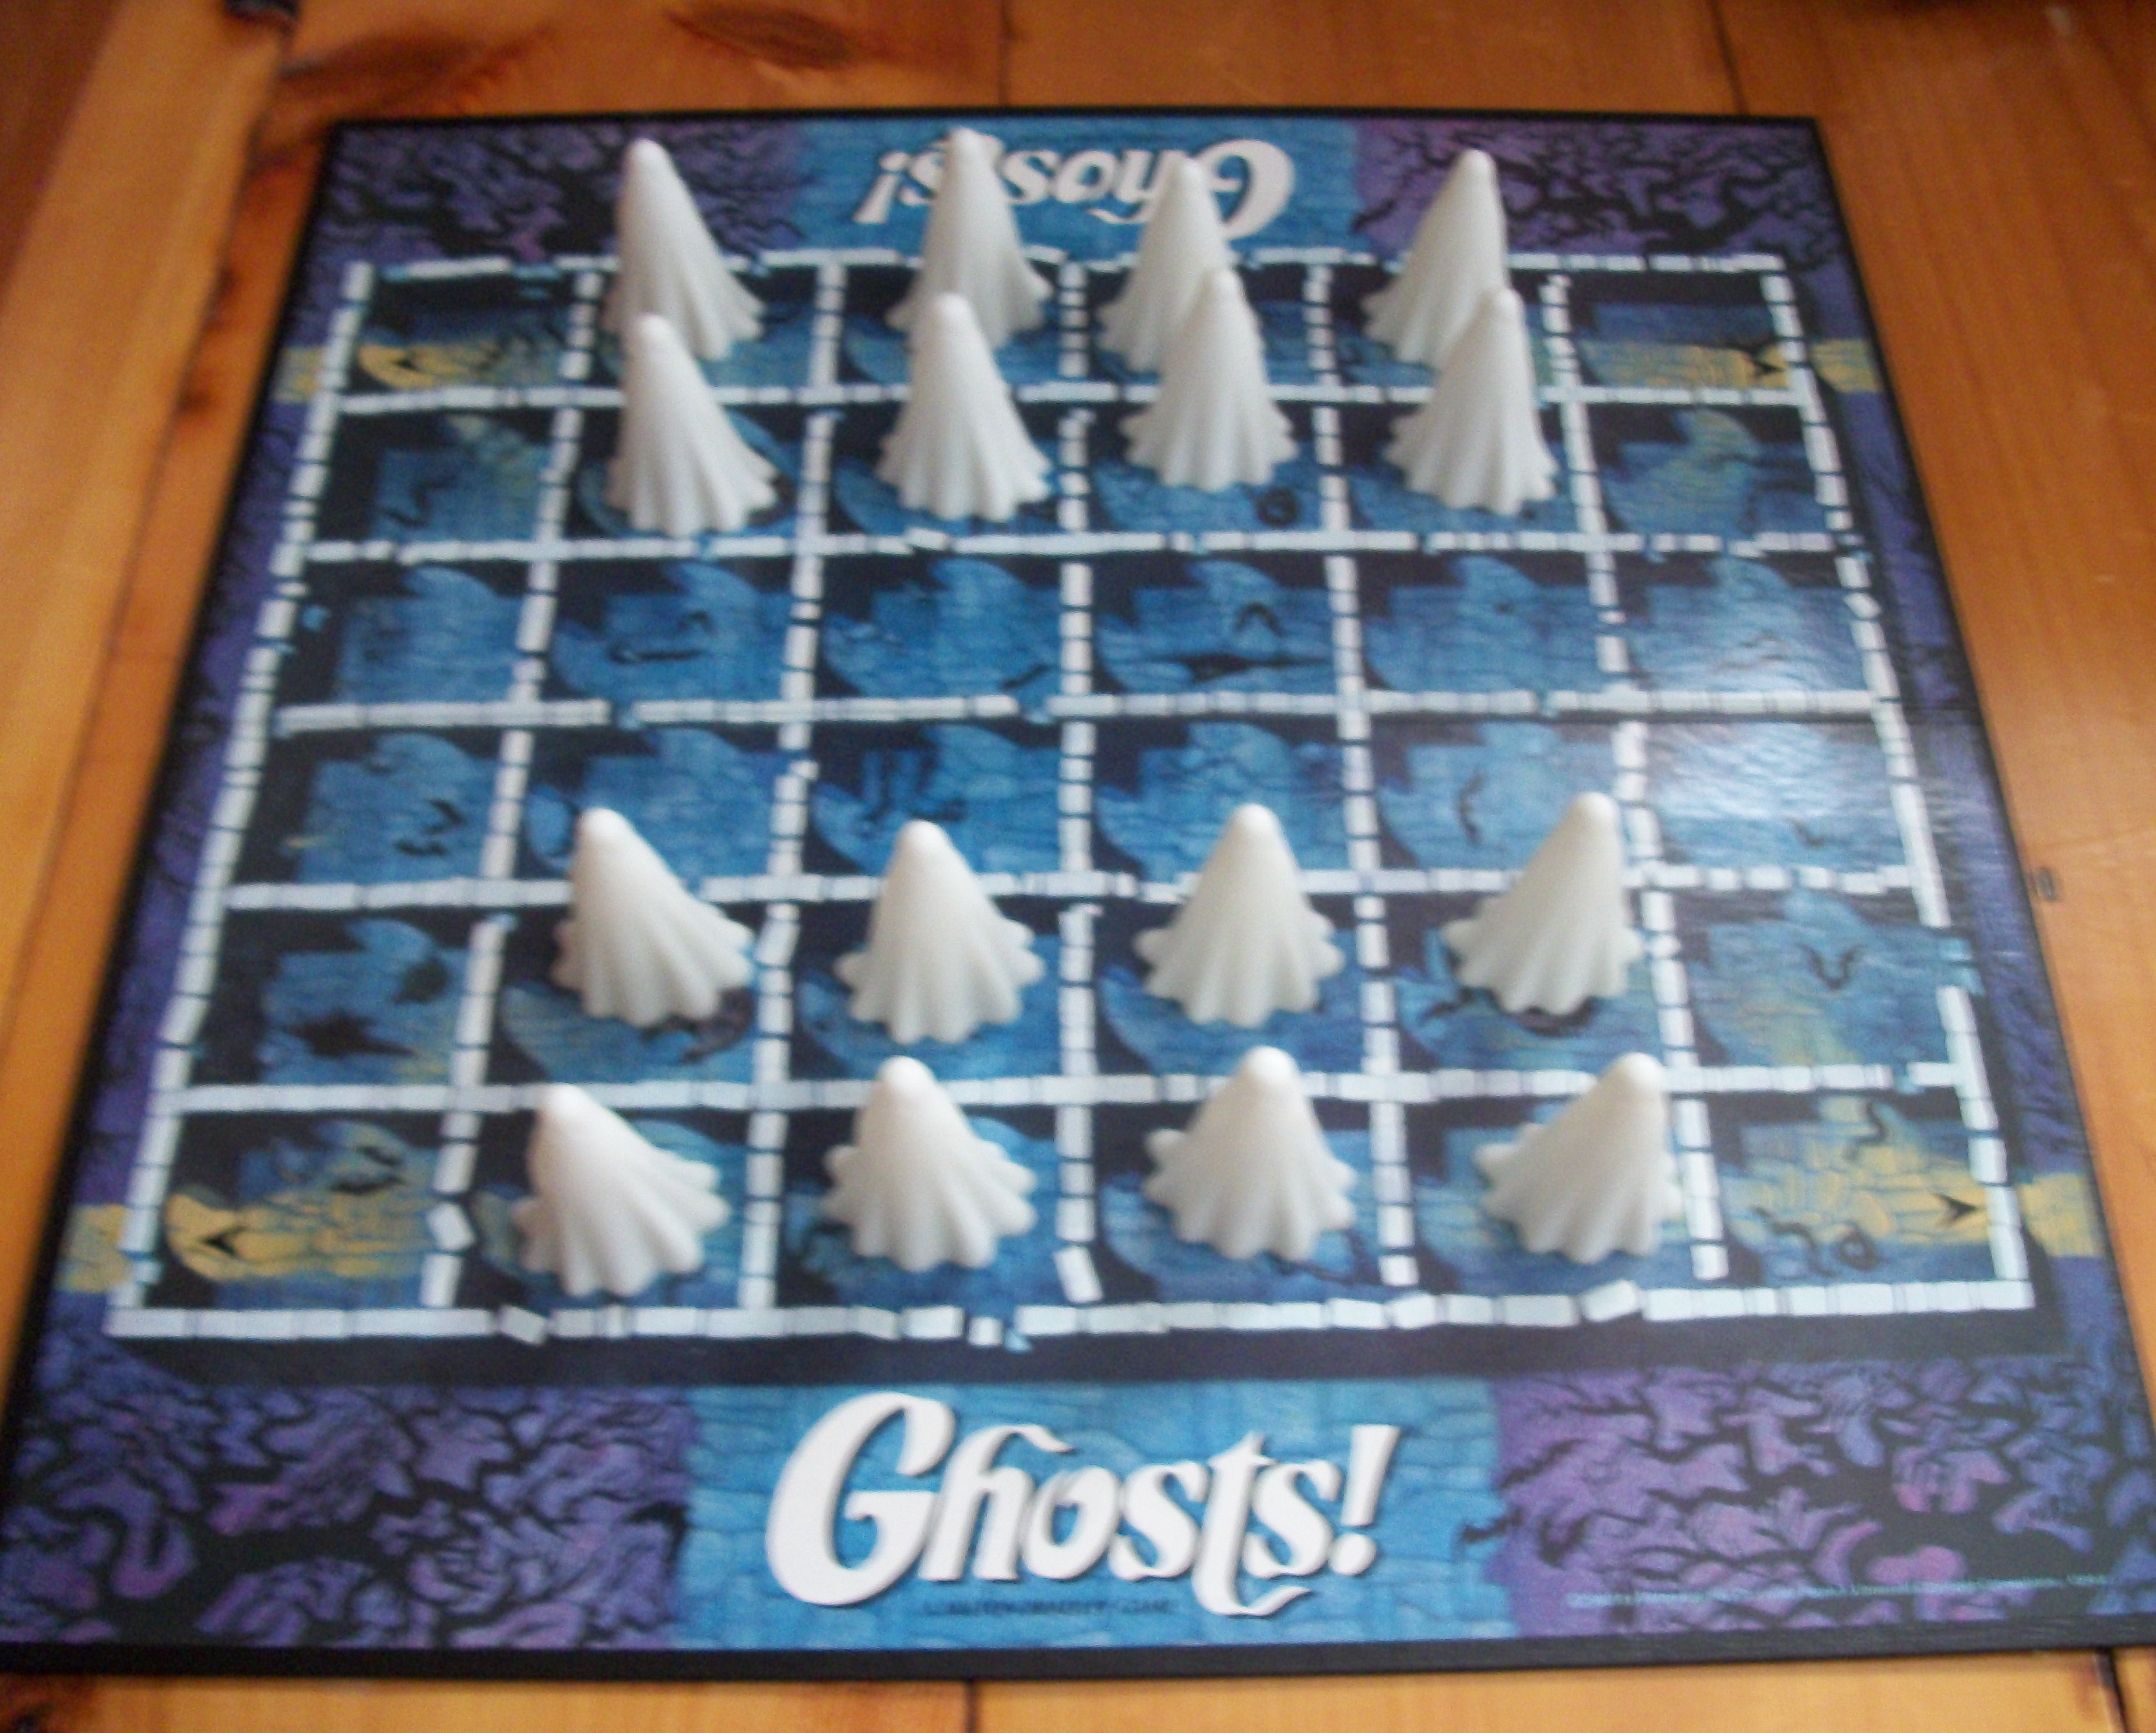 1985 Milton Bradley Game of Ghosts! – All About Fun and Games